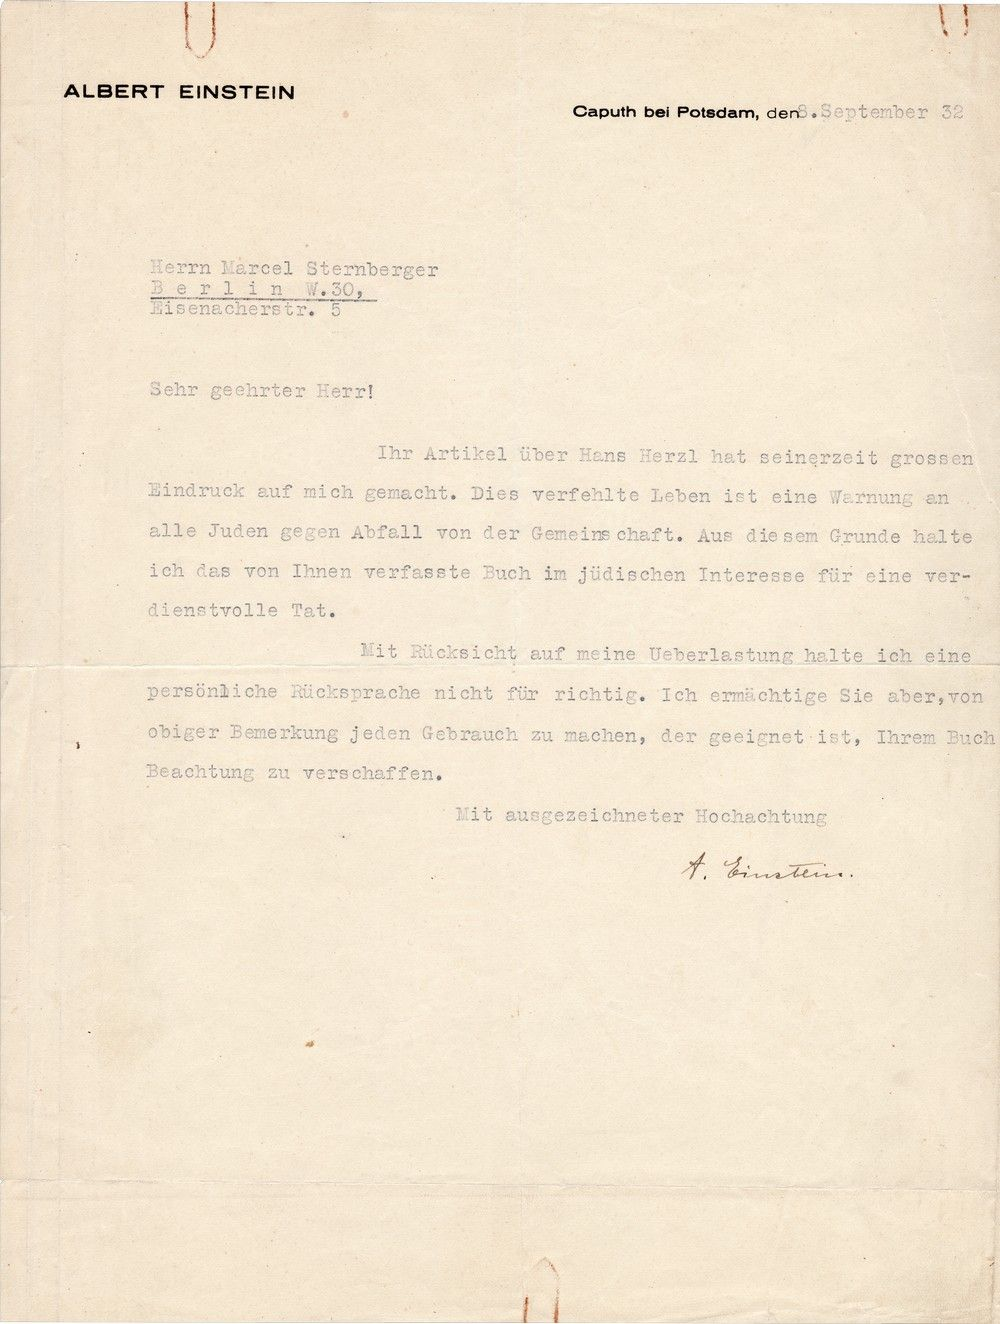 """Einstein on the Tragedy of Herzl's Son: """"A Warning to All Jews Against Defection From Their People"""""""